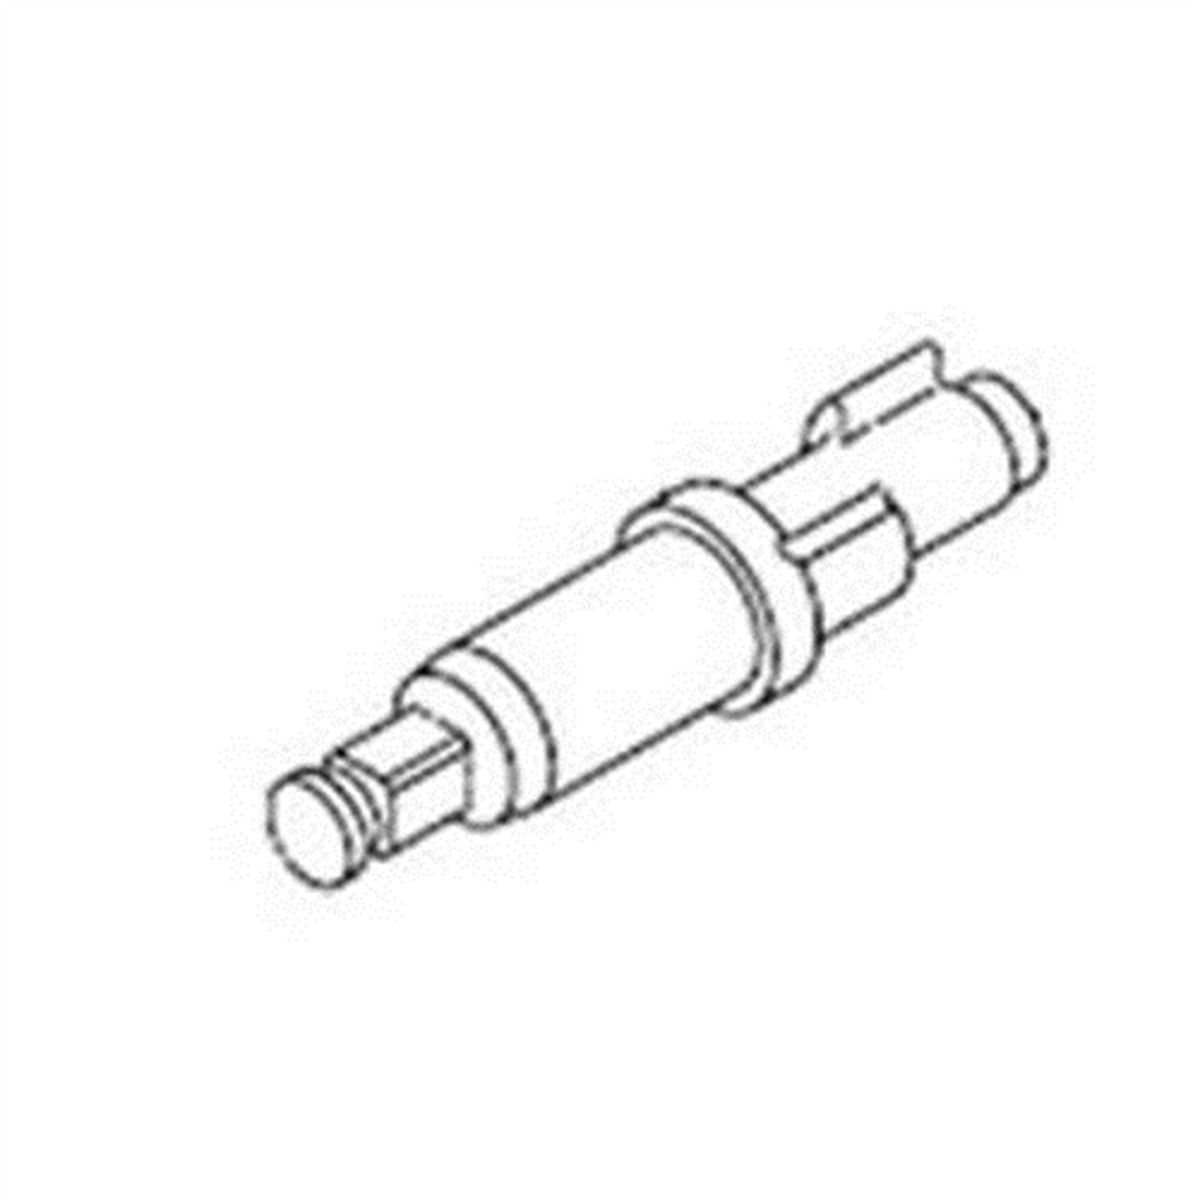 Ingersoll Rand A626 1 2 Drive Anvil Assembly For